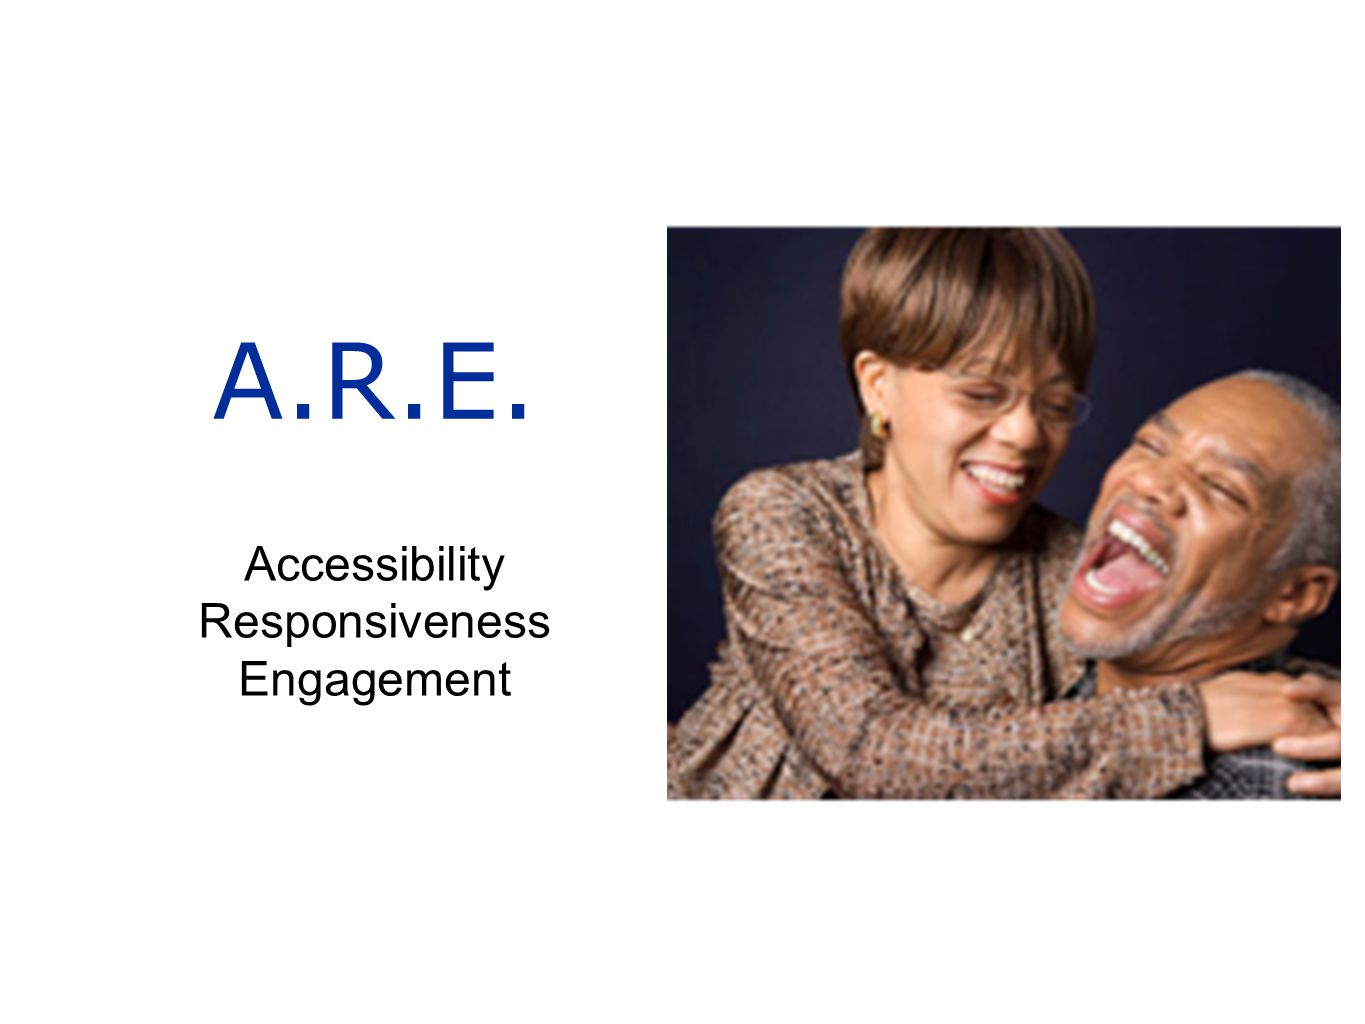 A.R.E. Accessibility Responsiveness Engagement